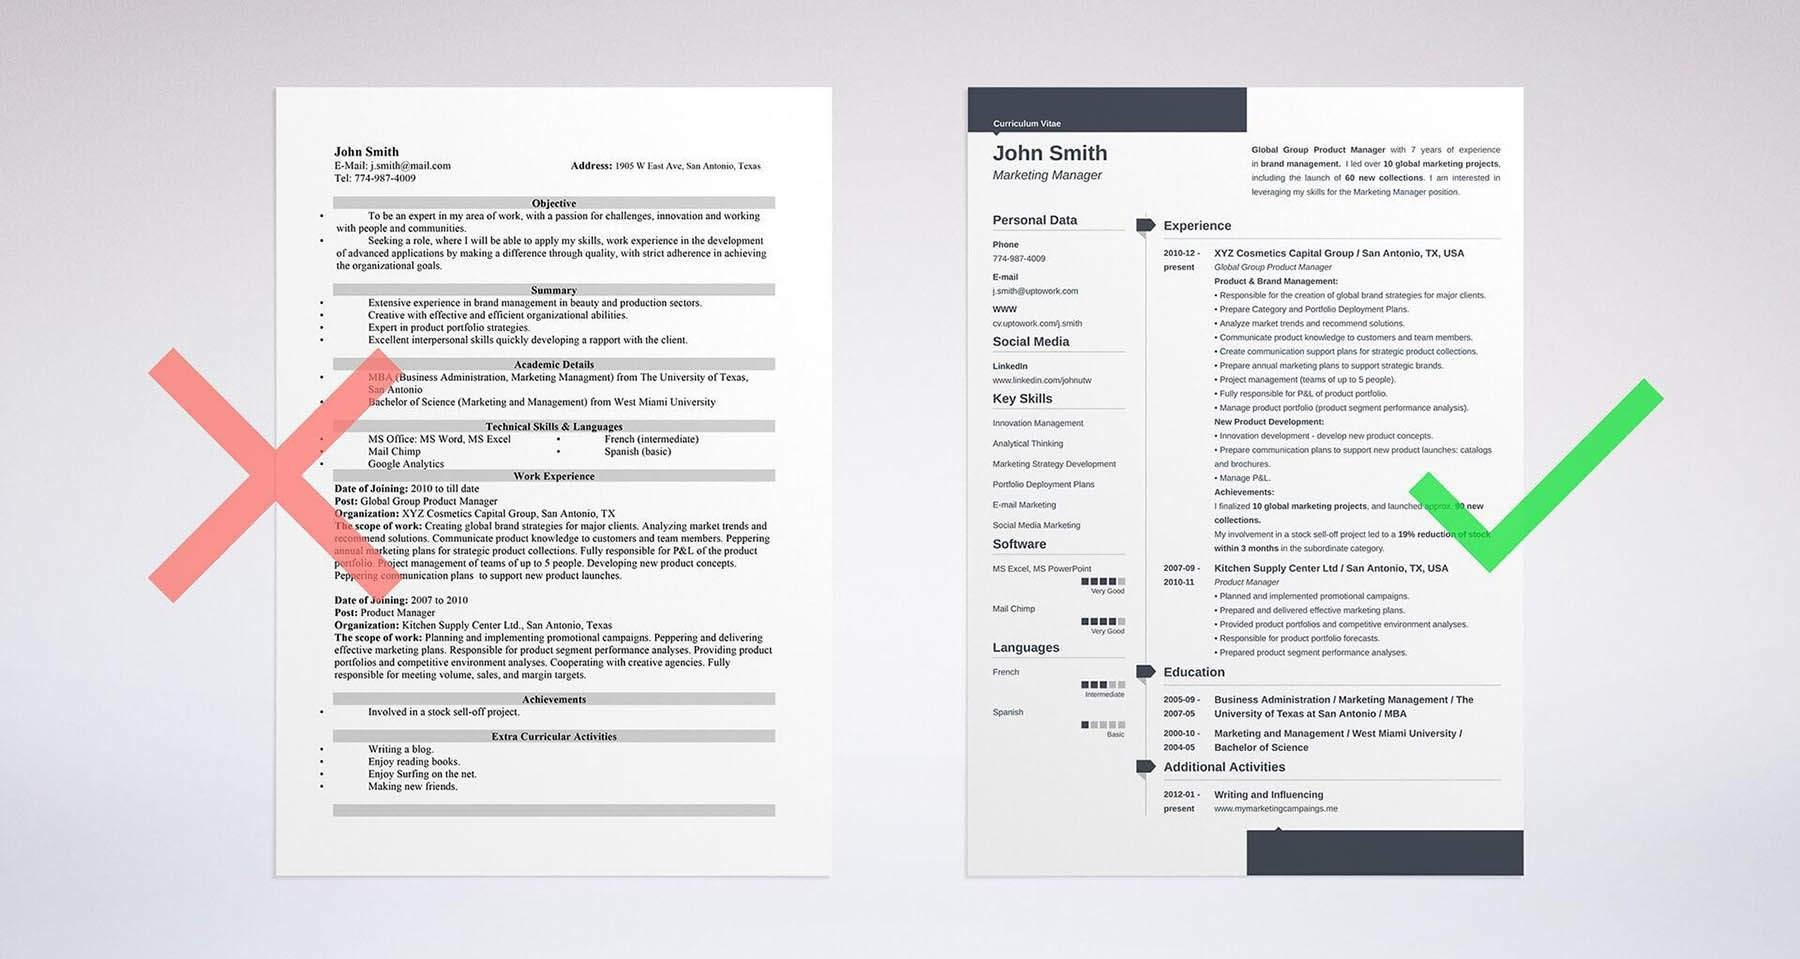 Sample Resume Objective   See +20 Resume Templates And Create Your Resume  Here  How To Wright A Resume